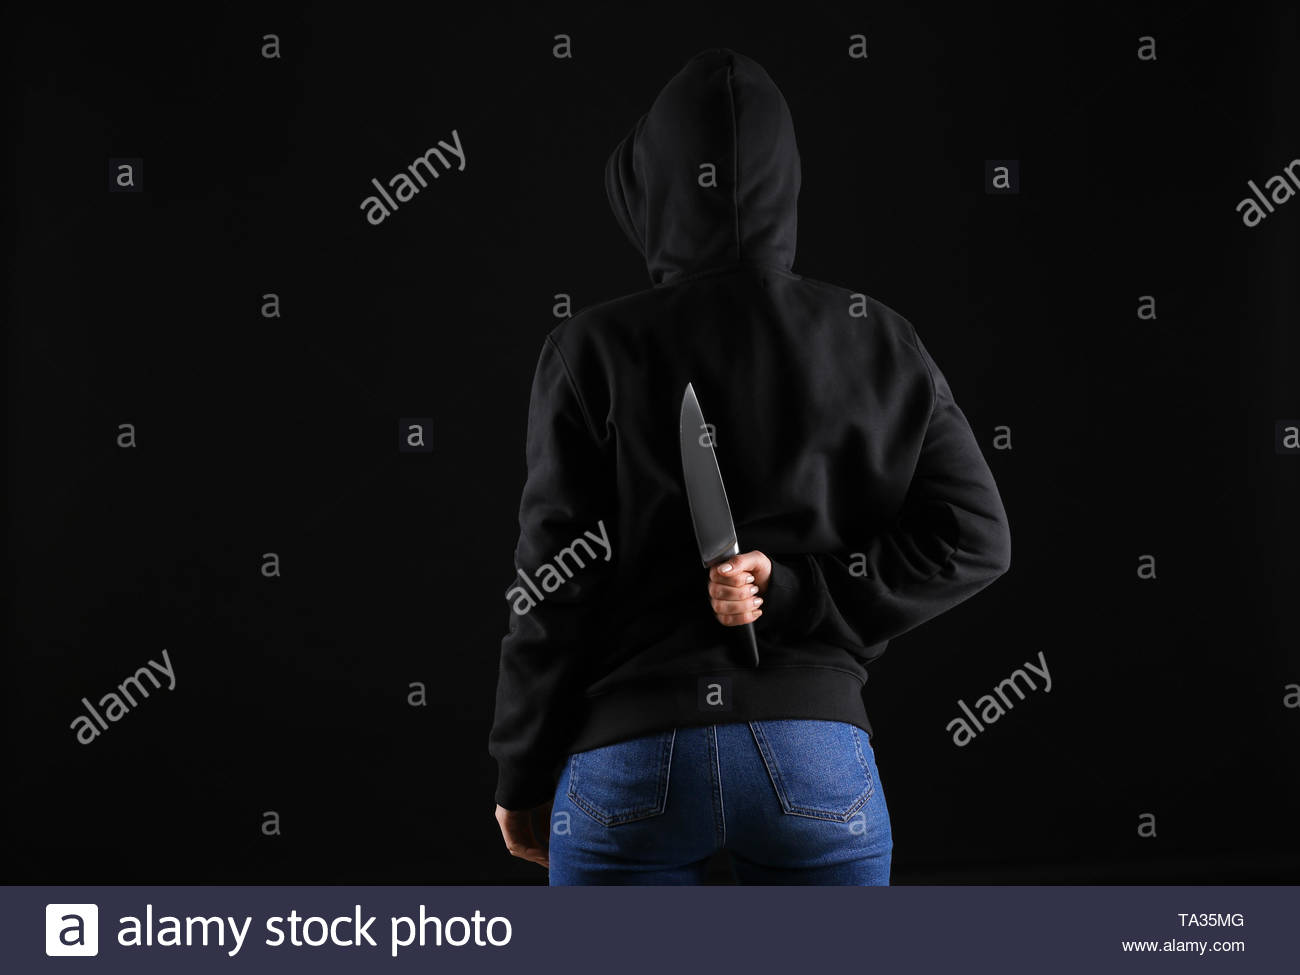 Bandit with knife on dark background Stock Photo 247162064   Alamy 1300x975